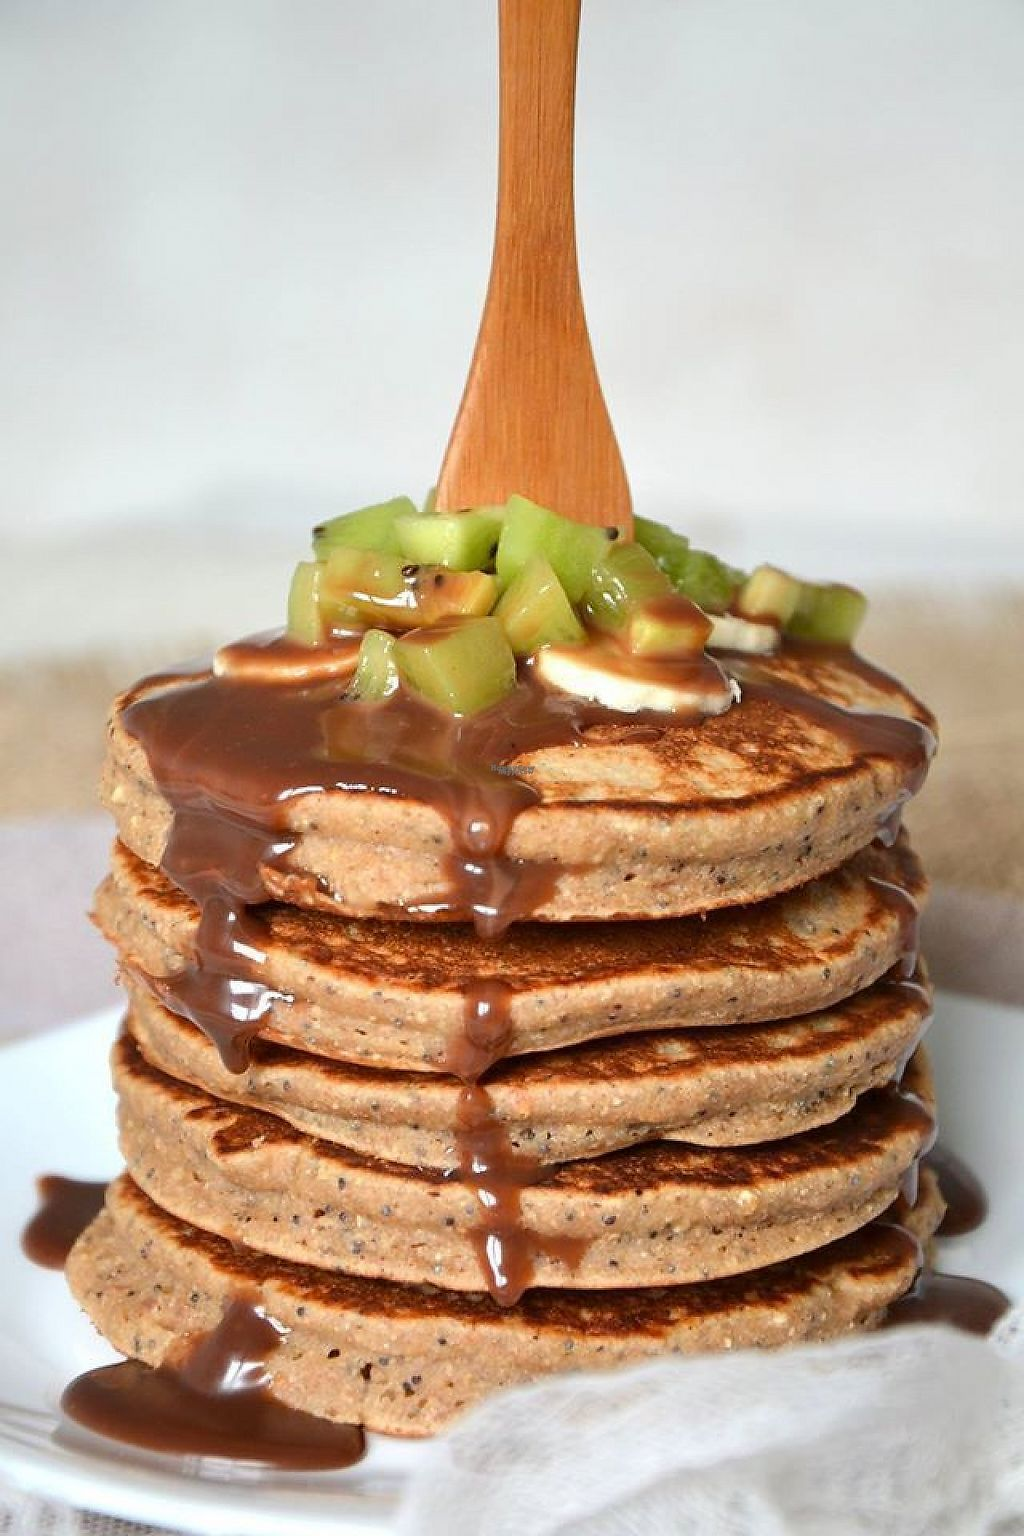 """Photo of La Vie Claire  by <a href=""""/members/profile/community"""">community</a> <br/>vegan pancakes  <br/> February 4, 2017  - <a href='/contact/abuse/image/68776/221811'>Report</a>"""